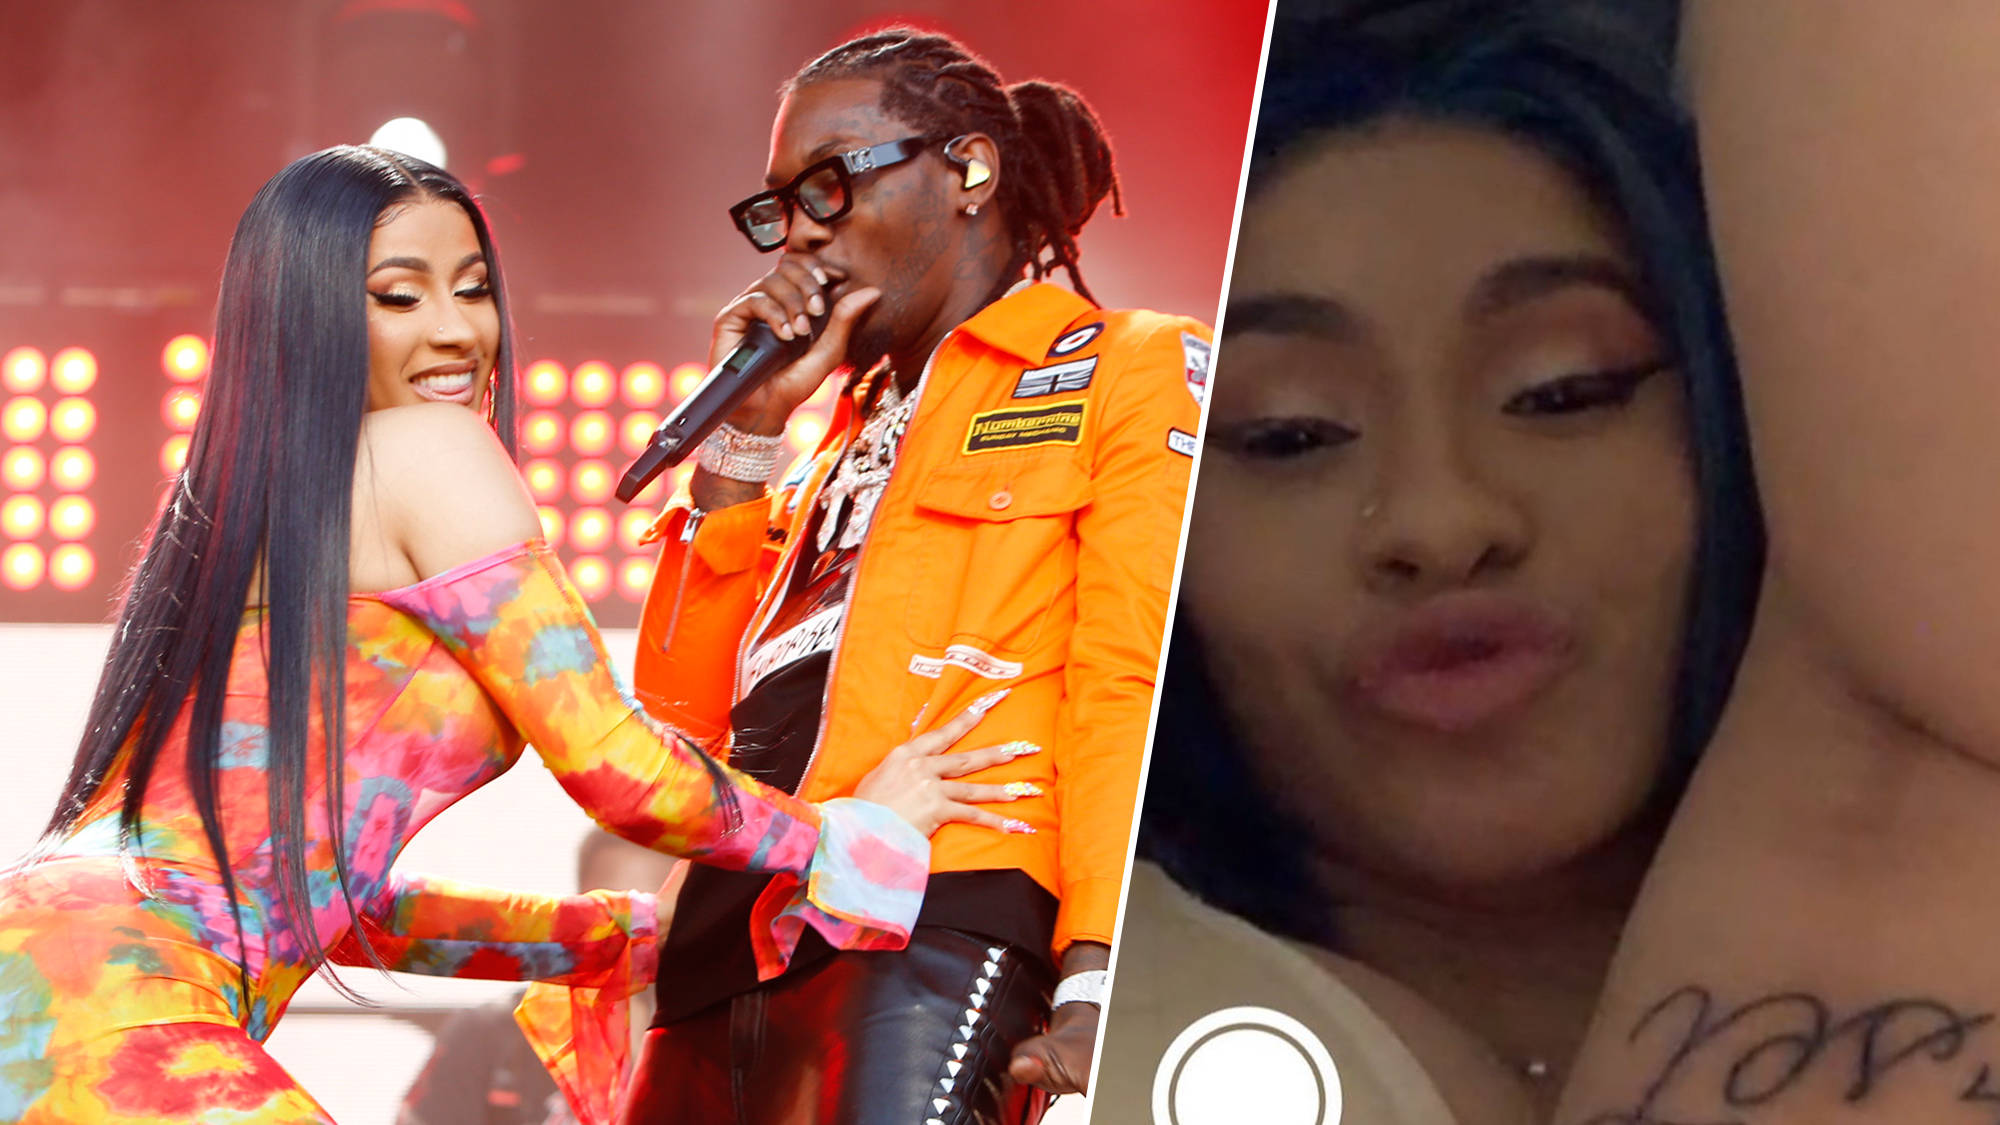 Cardi B Reveals Huge Offset Tattoo Of Husband S Name On Her Leg